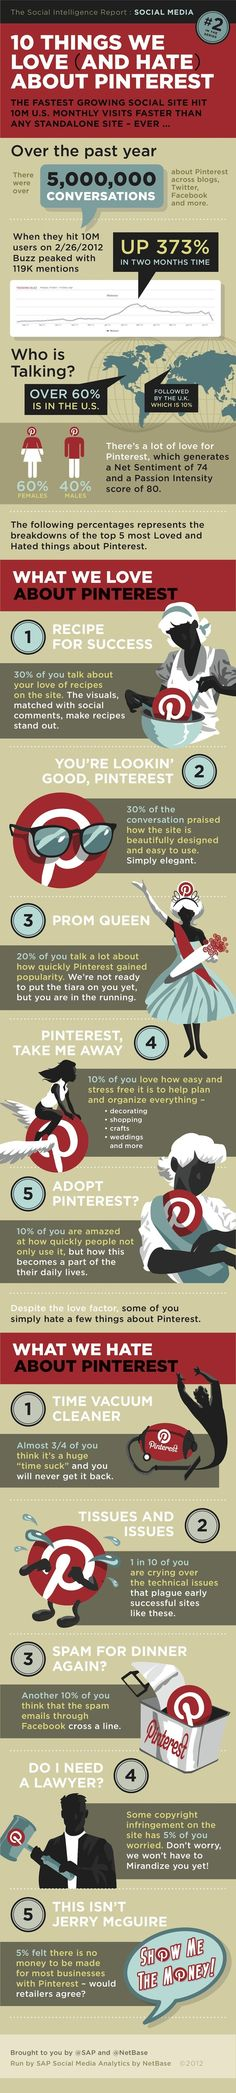 10 Things People Love and Hate About Pinterest...